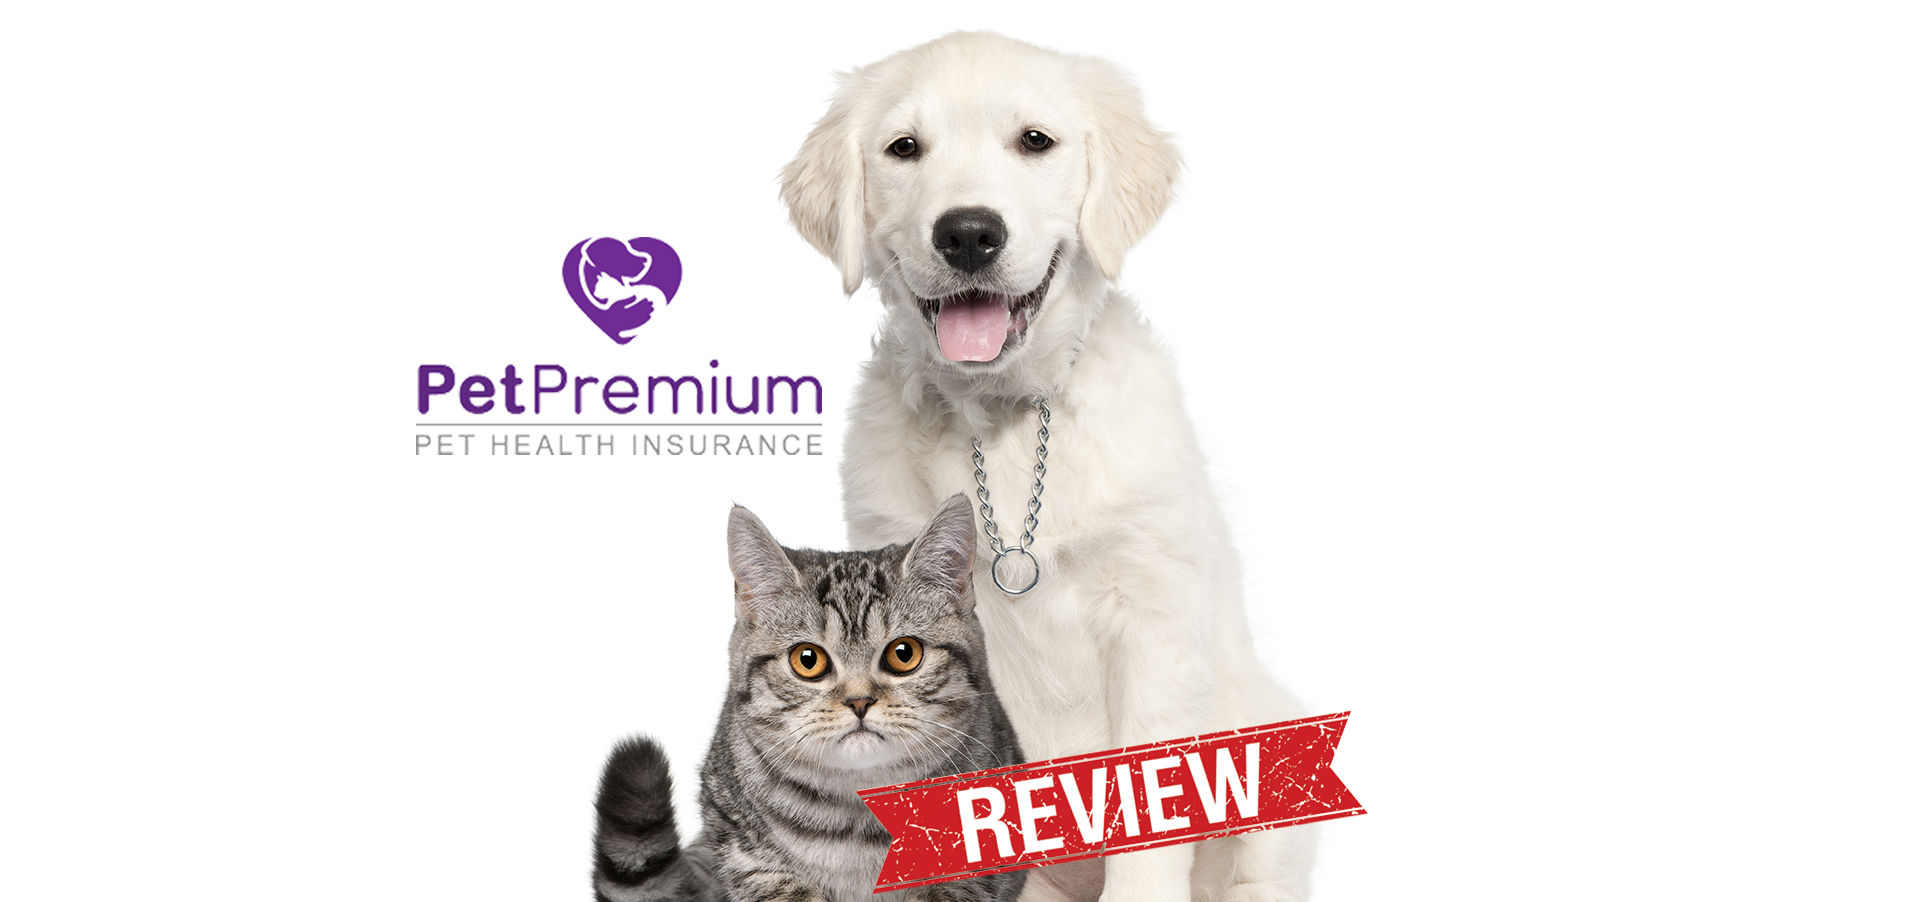 Petpremium Is The Newest Pet Insurance Provider On Our List Of